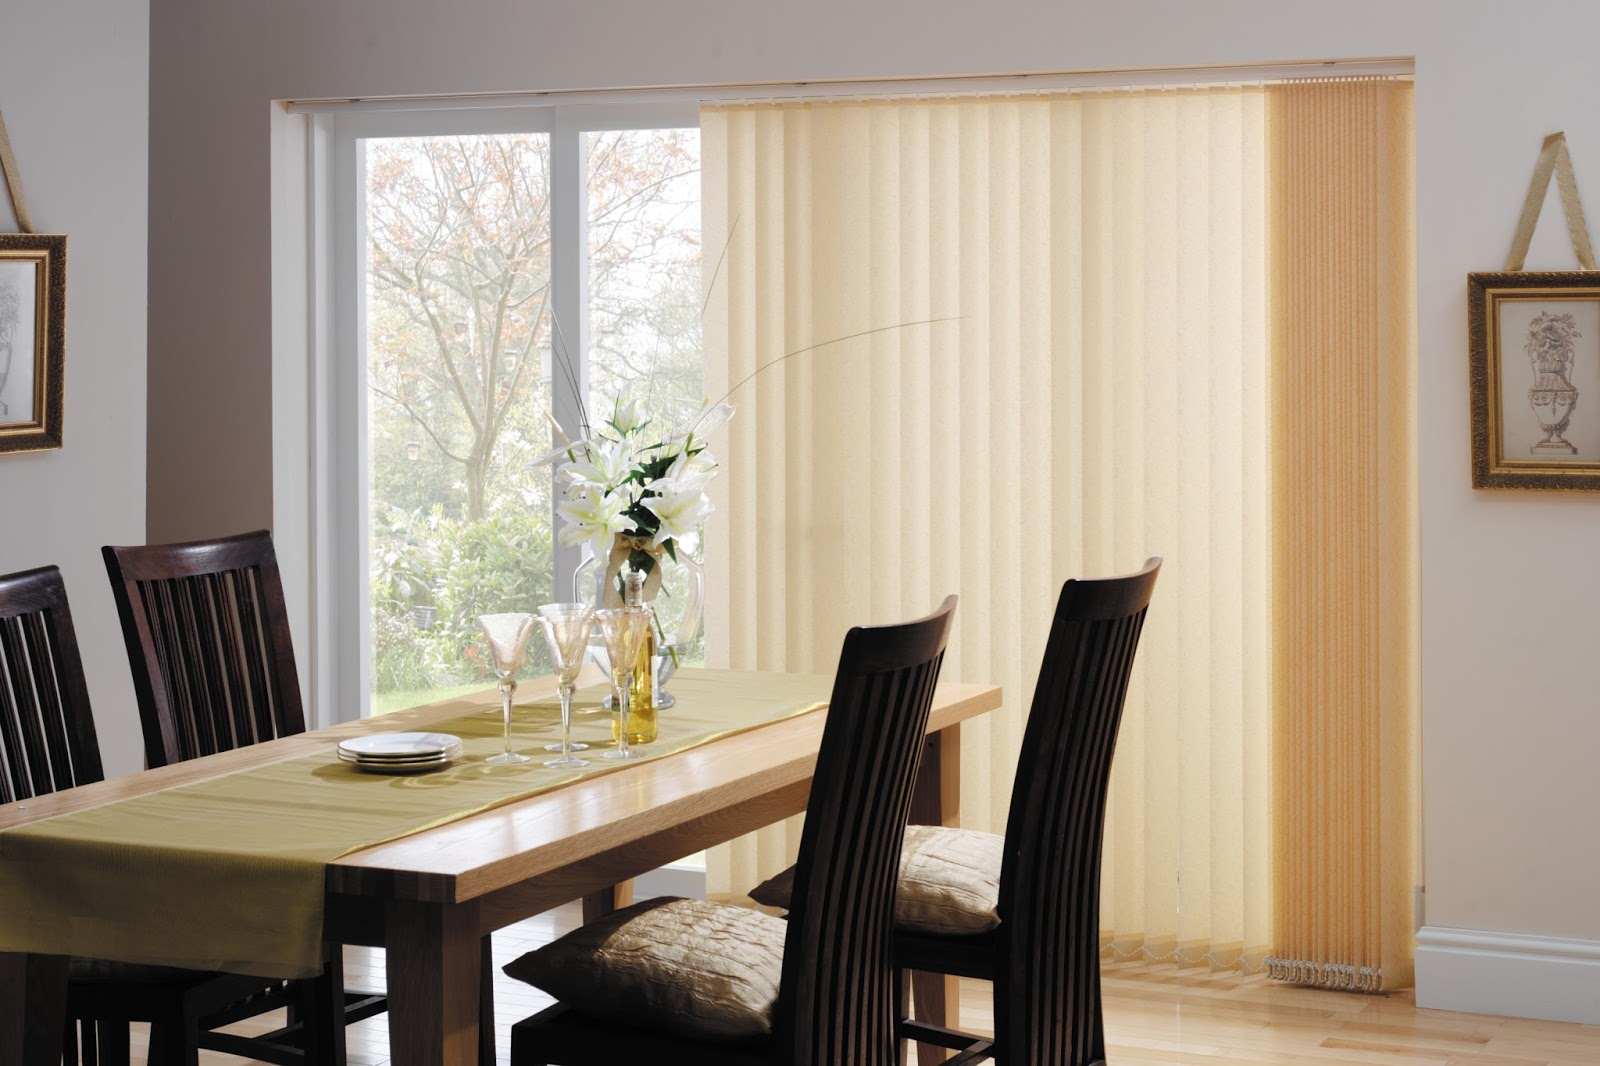 Replacement lapwing design blackout vertical blind slats in white or - Patio Door Blinds